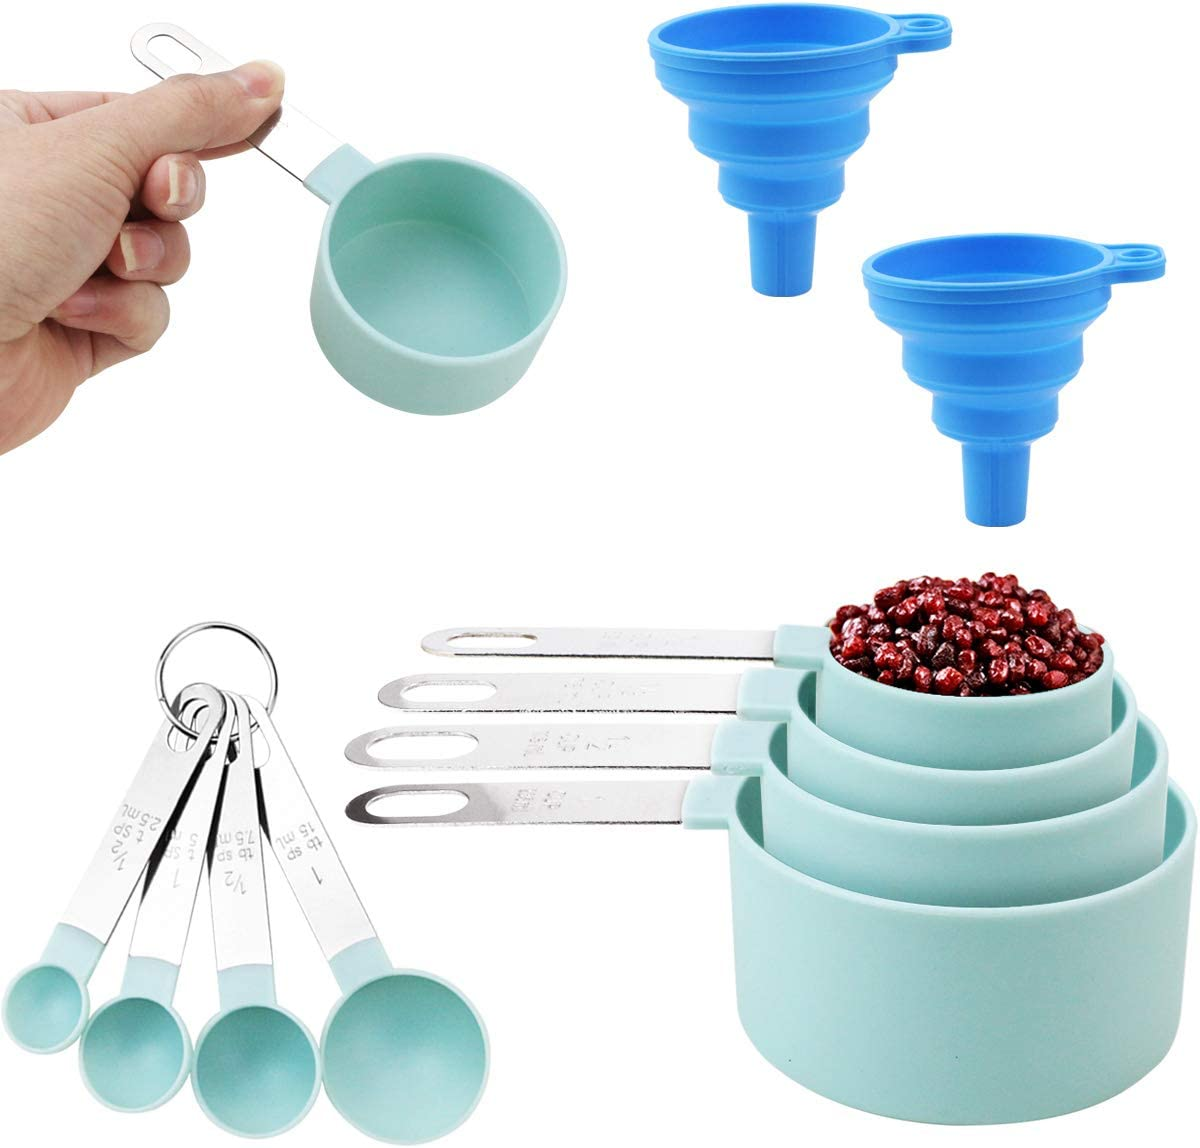 SKPPC 8 Attention brand Pieces Plastic Measuring Cups Spoons Cu Set and Measure Japan Maker New